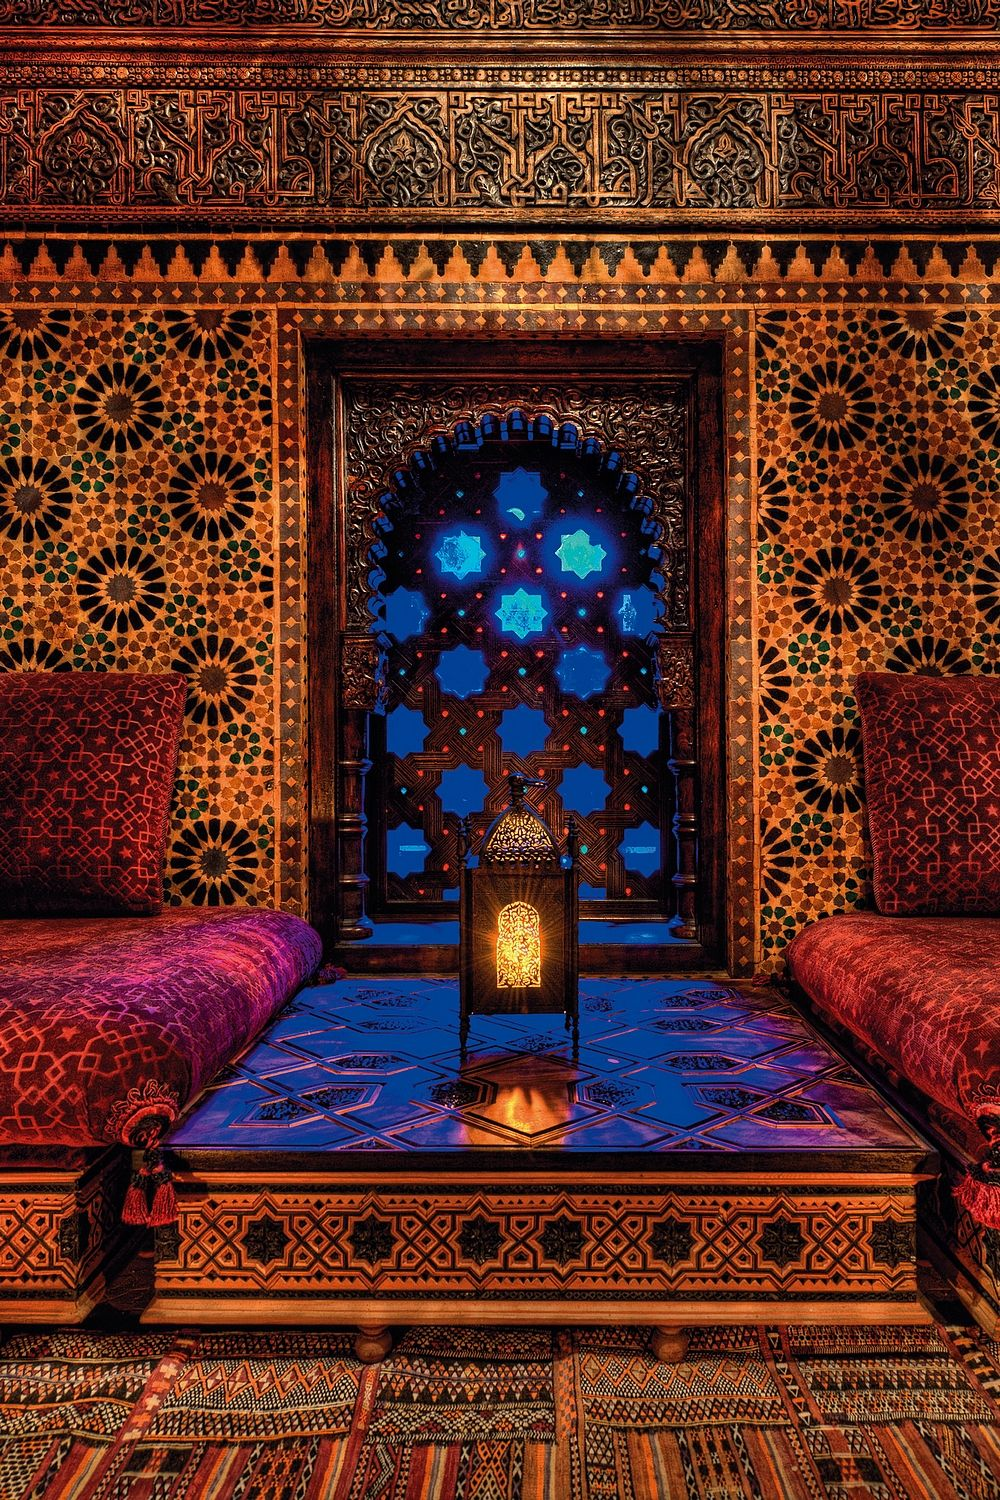 Moroccan Interior Design: Legendary Perfumer Serge Lutens Luxury Palace In Marrakech